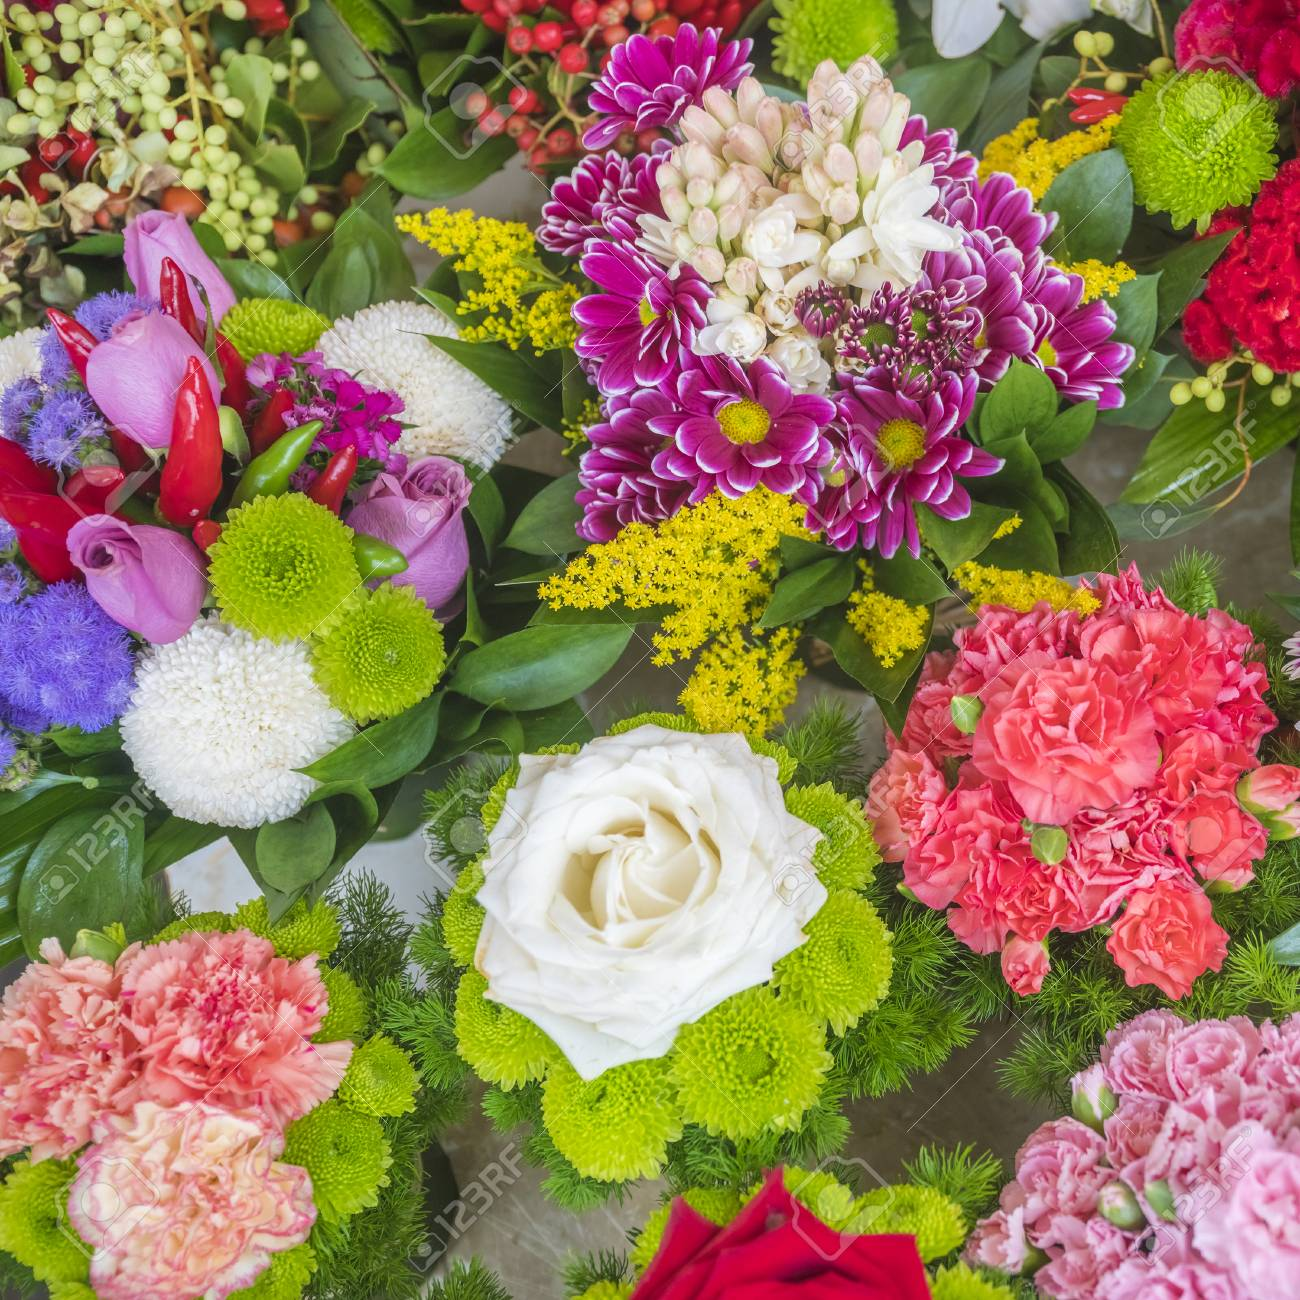 Colorful bouquets of different flowers flower shop stock photo colorful bouquets of different flowers flower shop stock photo 97208583 izmirmasajfo